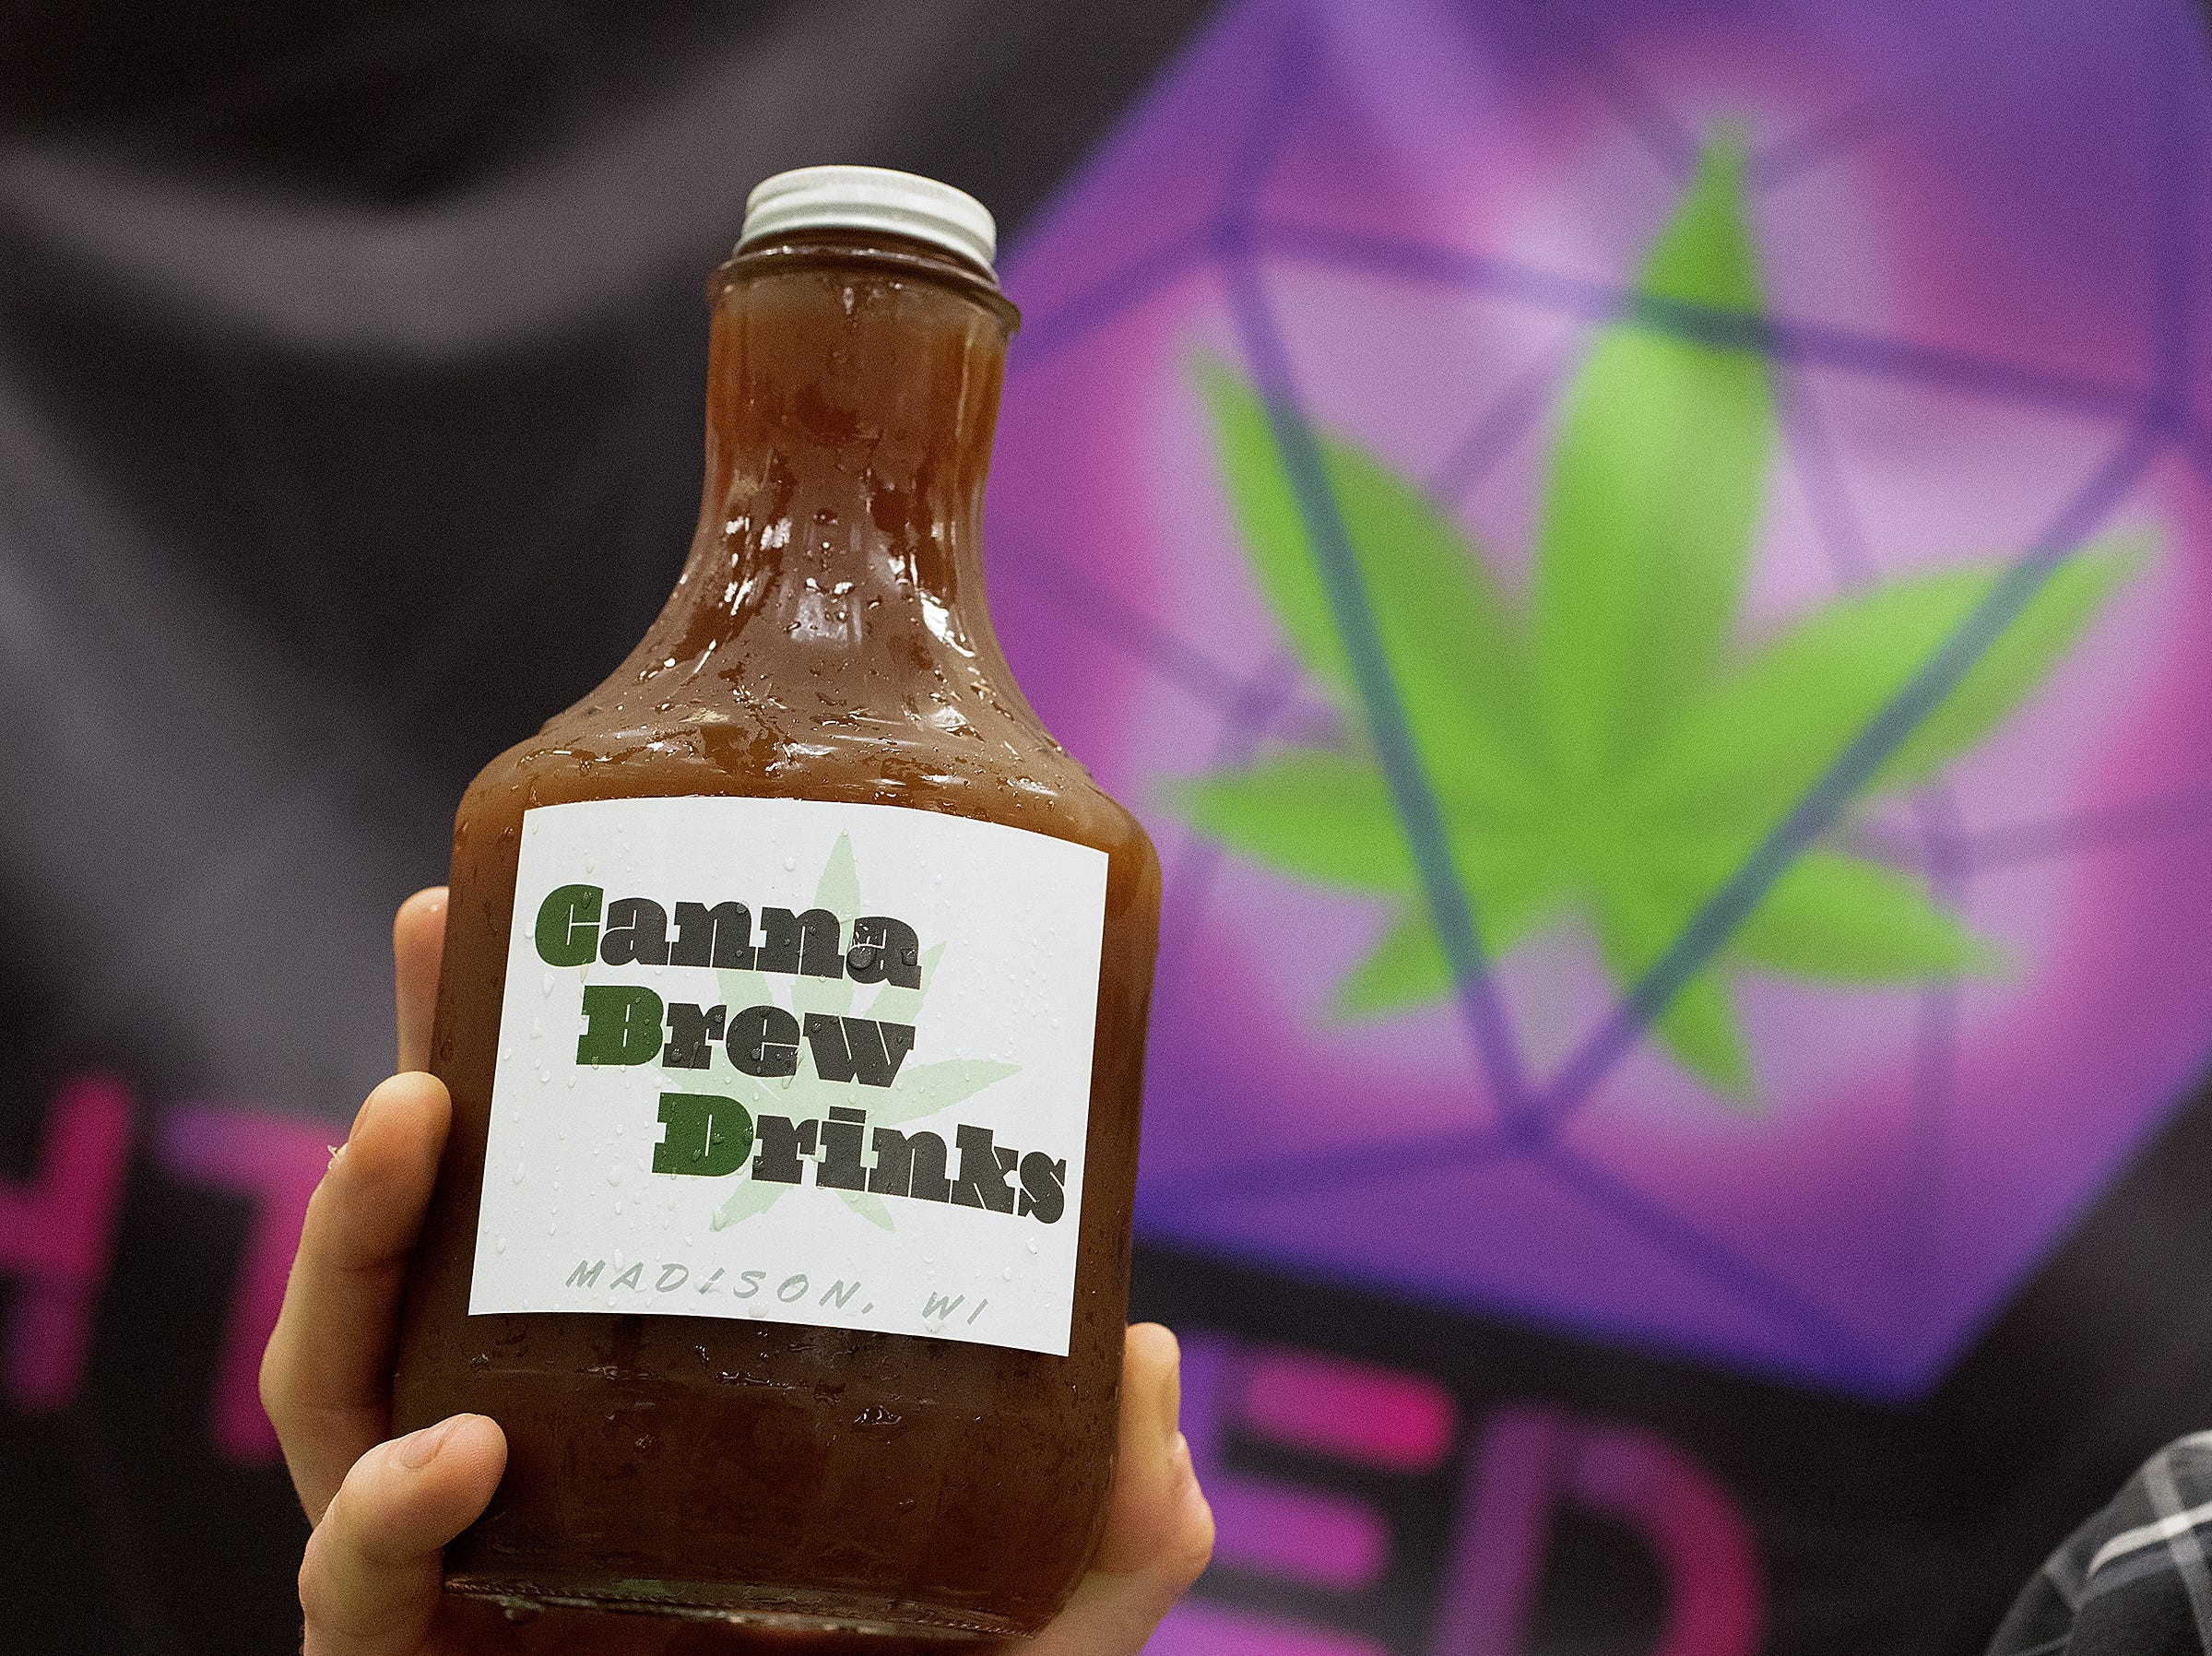 """""""Let It Ride"""" Canna Brew Drinks, bottle cold brew coffee from Madison WI, at the CBD Expo at the Marriott East in Indianapolis on Friday, Mar. 15, 2019."""